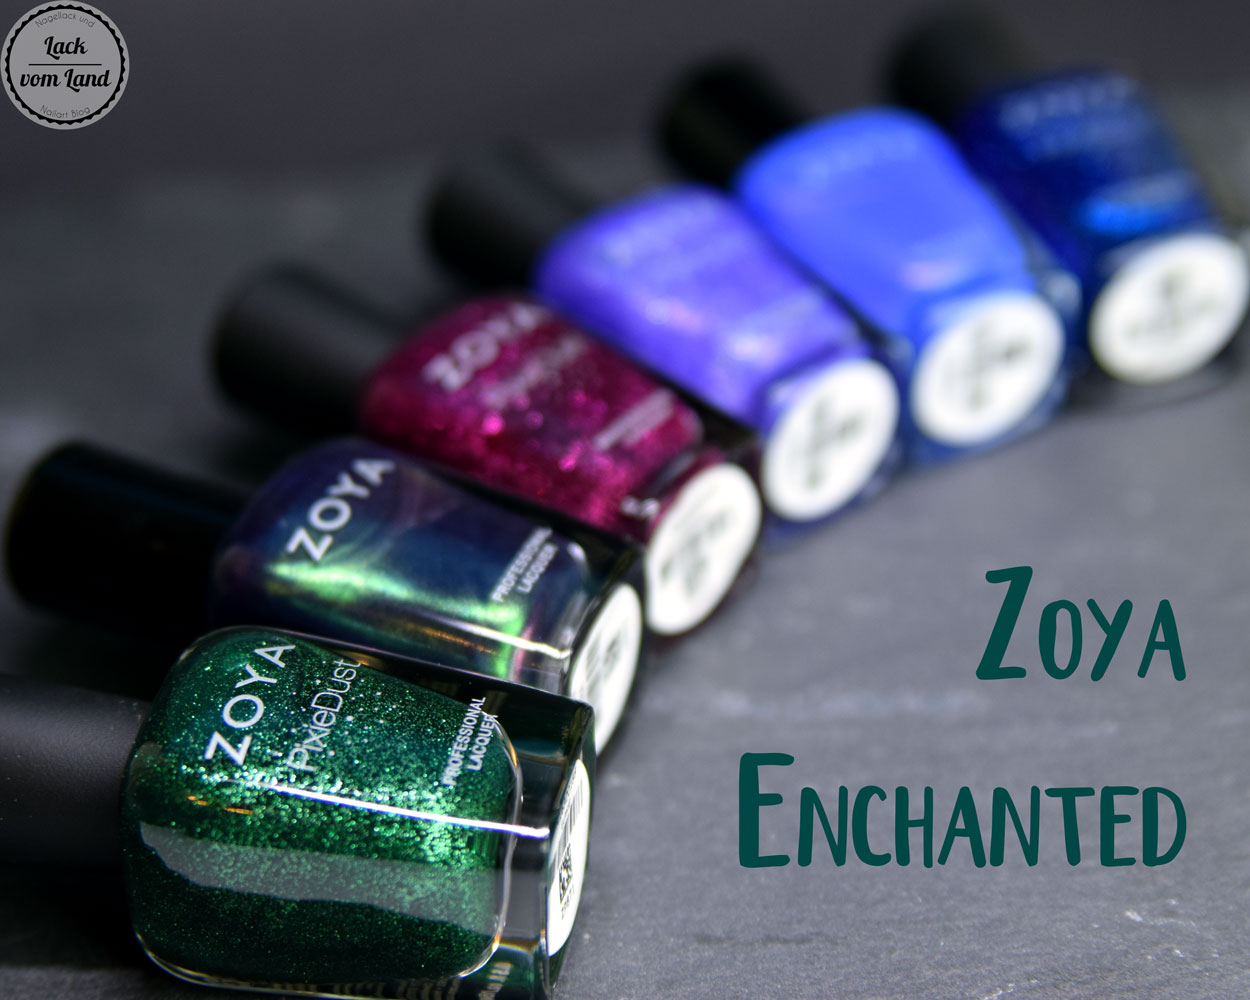 zoya-enchanted-collection-5